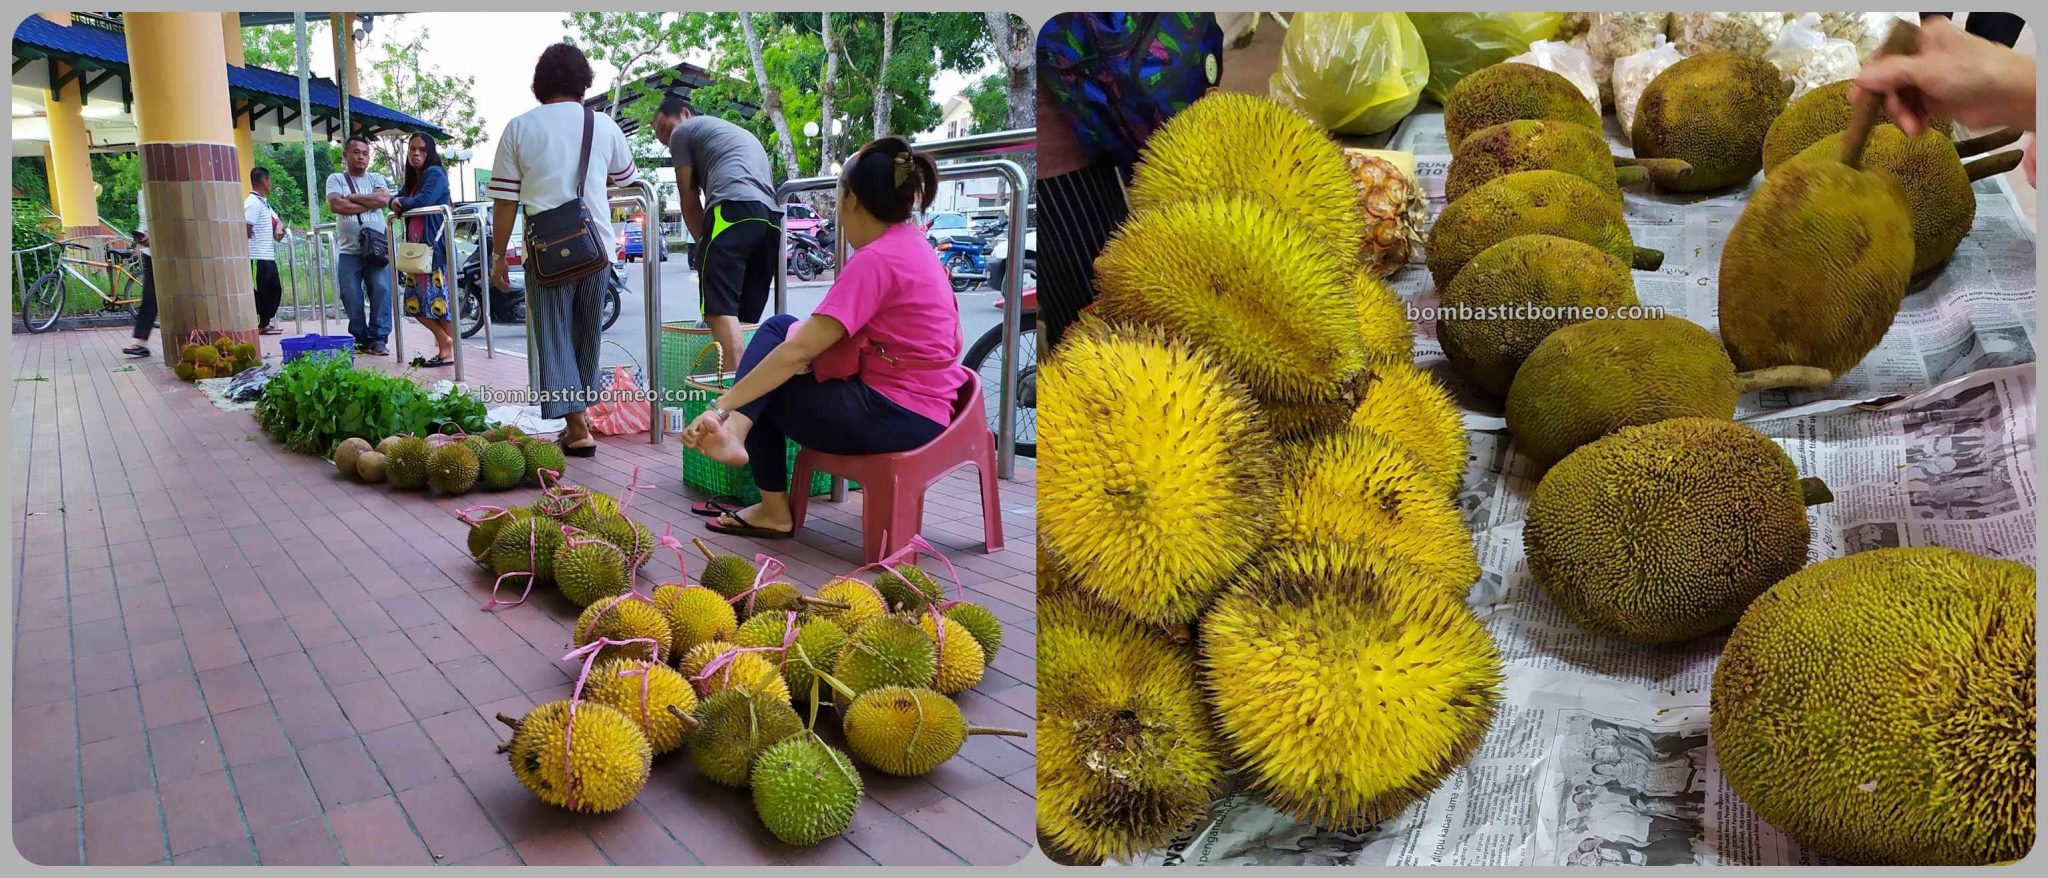 Durian, exotic fruits, vegetables, backpackers, Destination, exploration, Pasar tamu, local market, town, Tourist attraction, travel guide, Trans Borneo, 马来西亚砂拉越内陆, 马鲁帝早市,